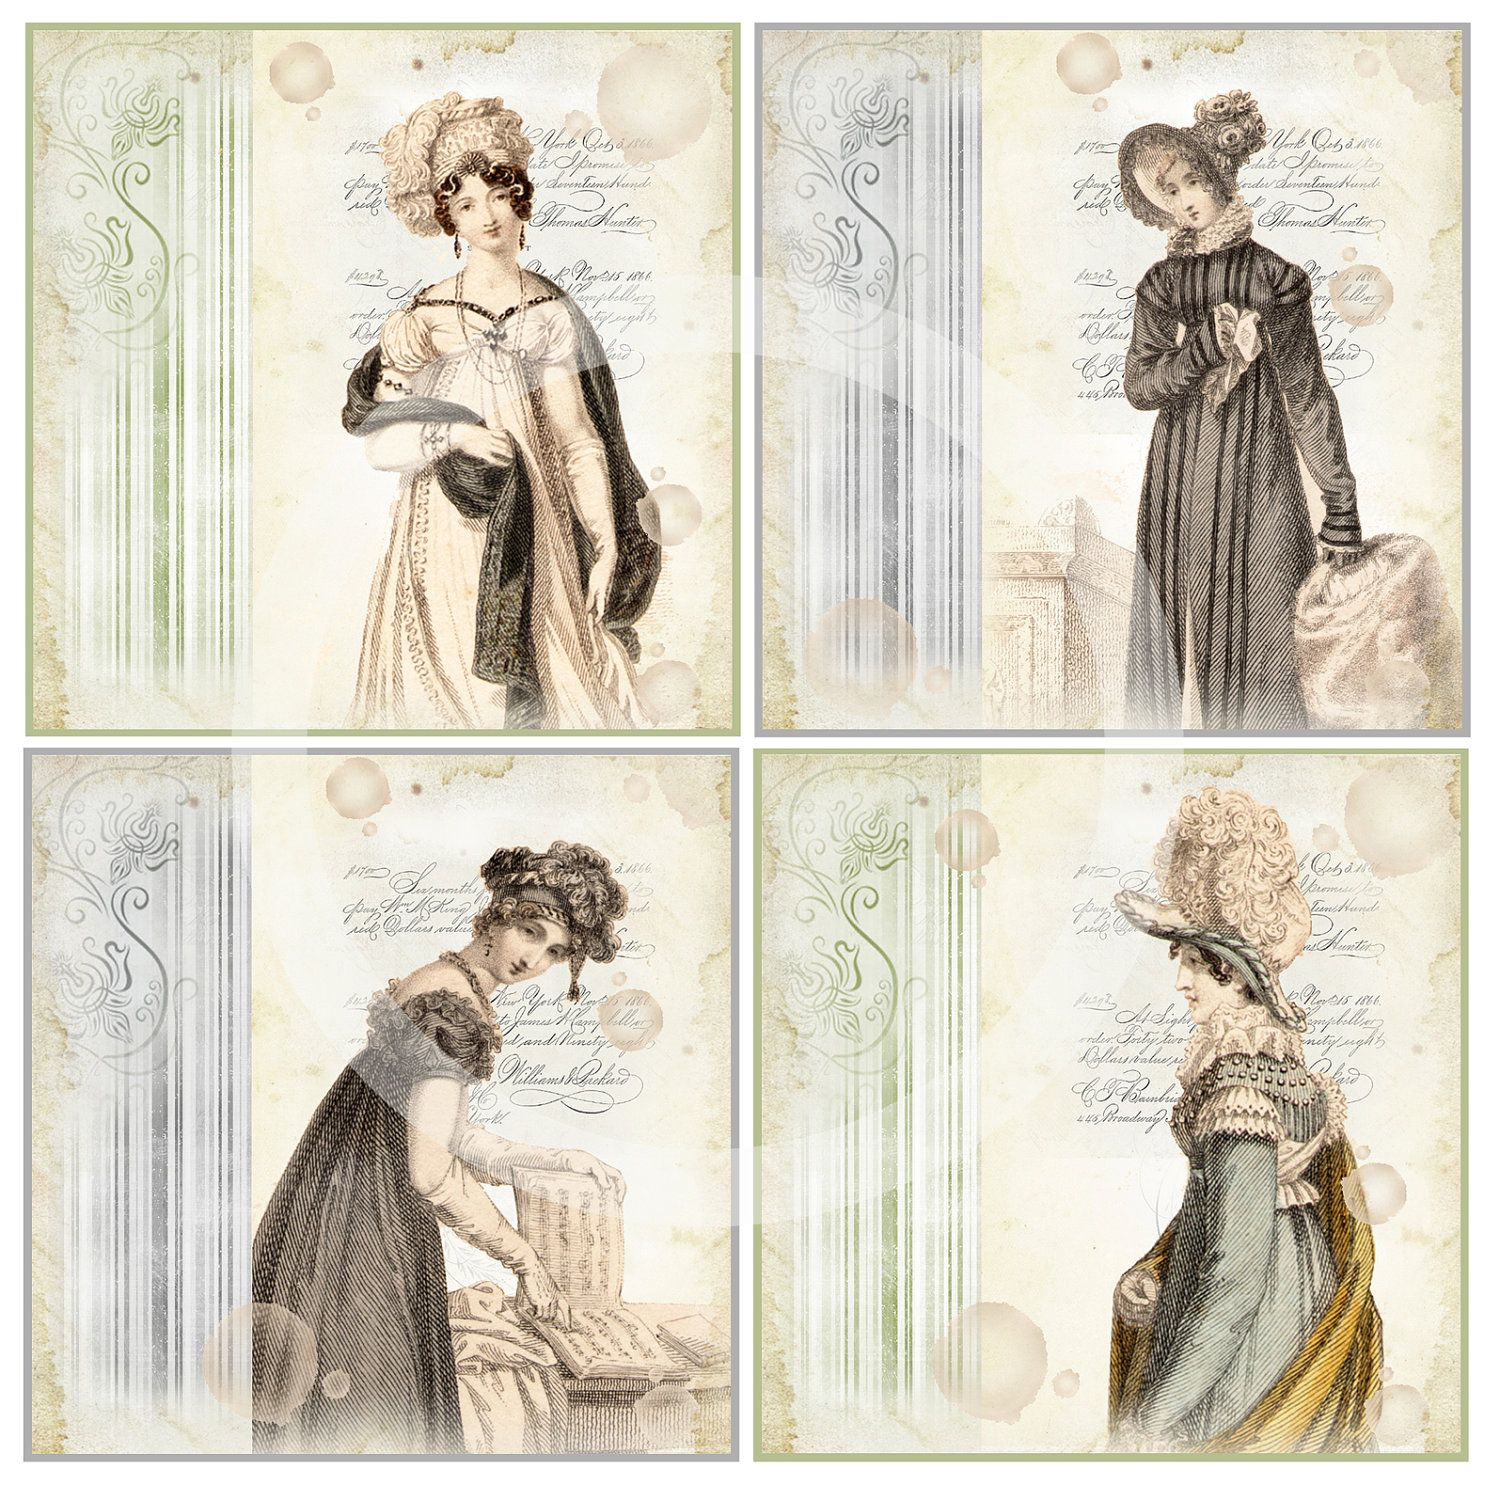 REGENCY SQUARES & STRIPS - Scrapbooking - Printable Download - Digital Scan - Jane Austen